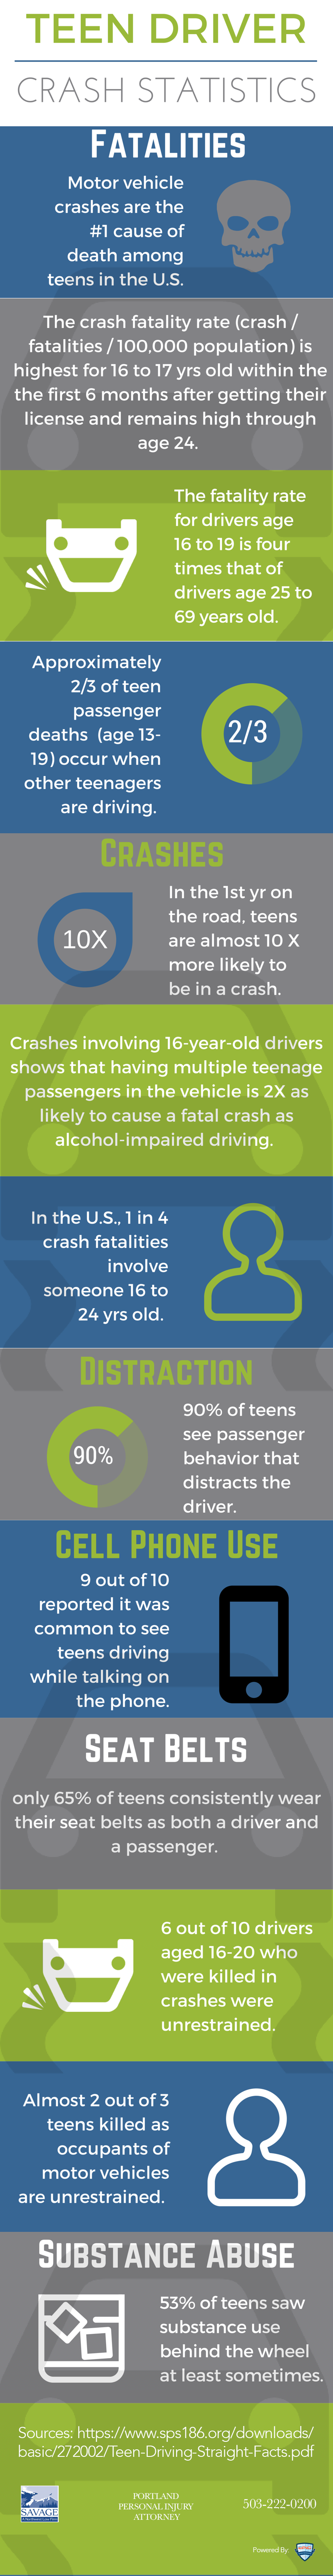 Teens in Traffic Crashes: An Infographic